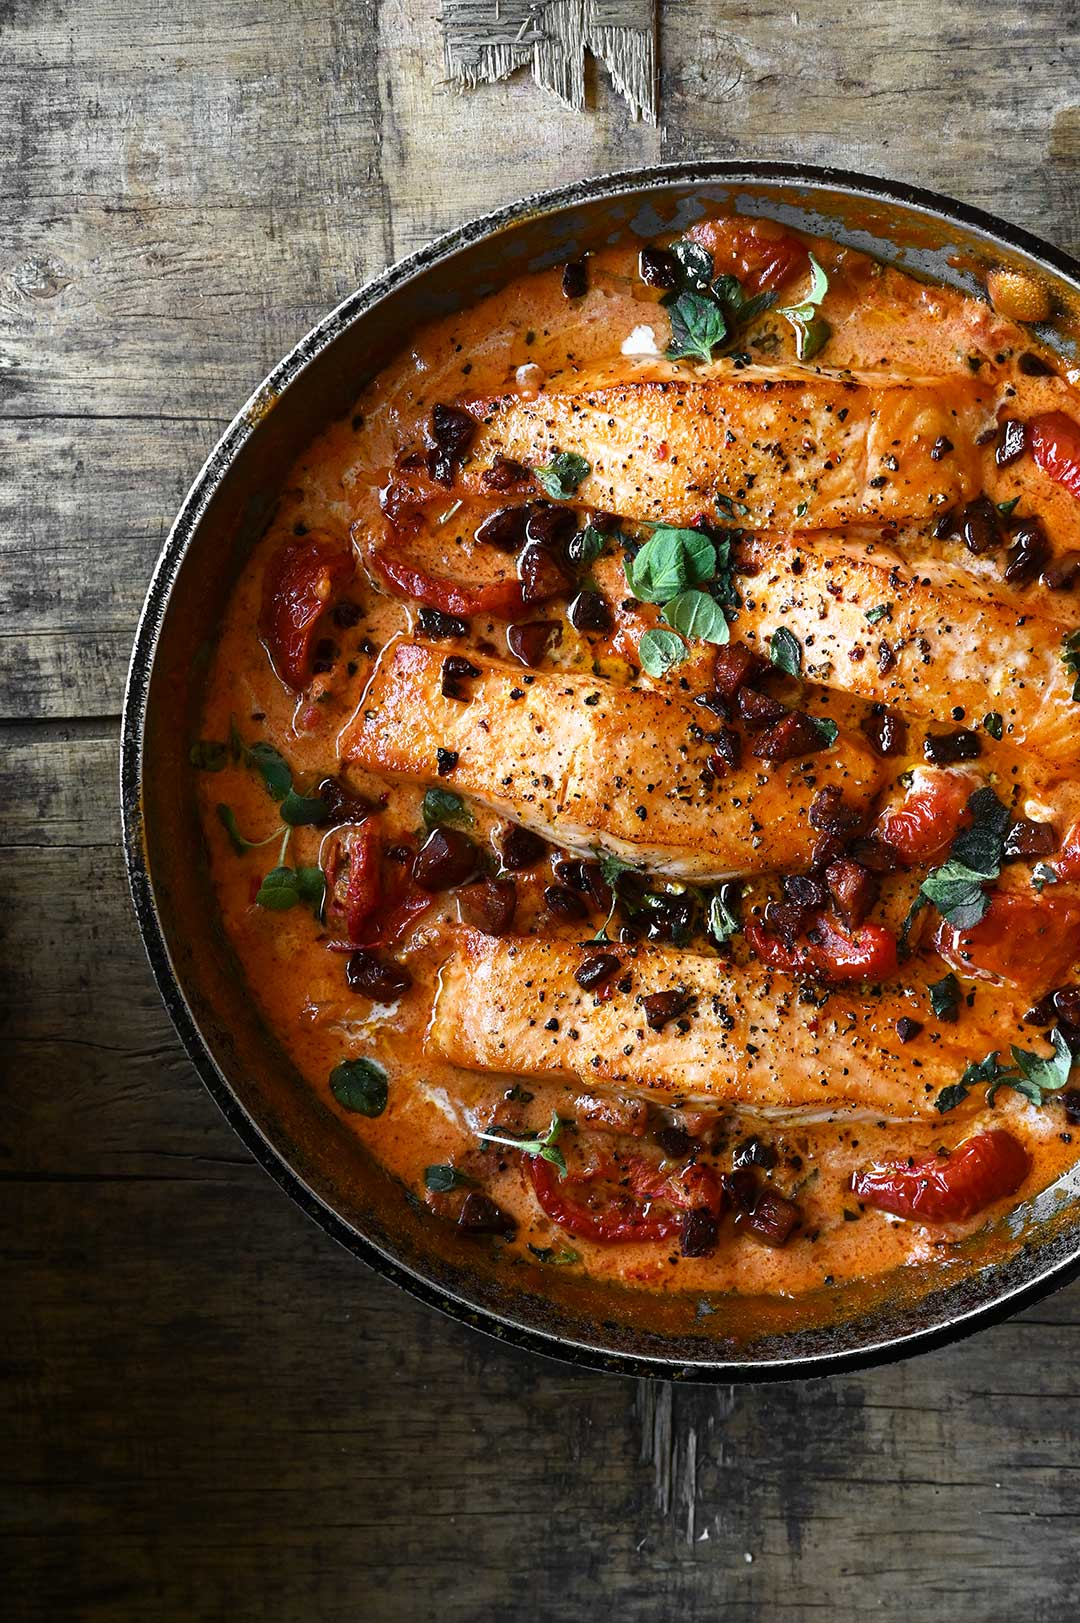 serving dumplings | One-Pan Creamy Tomato Salmon with Chorizo